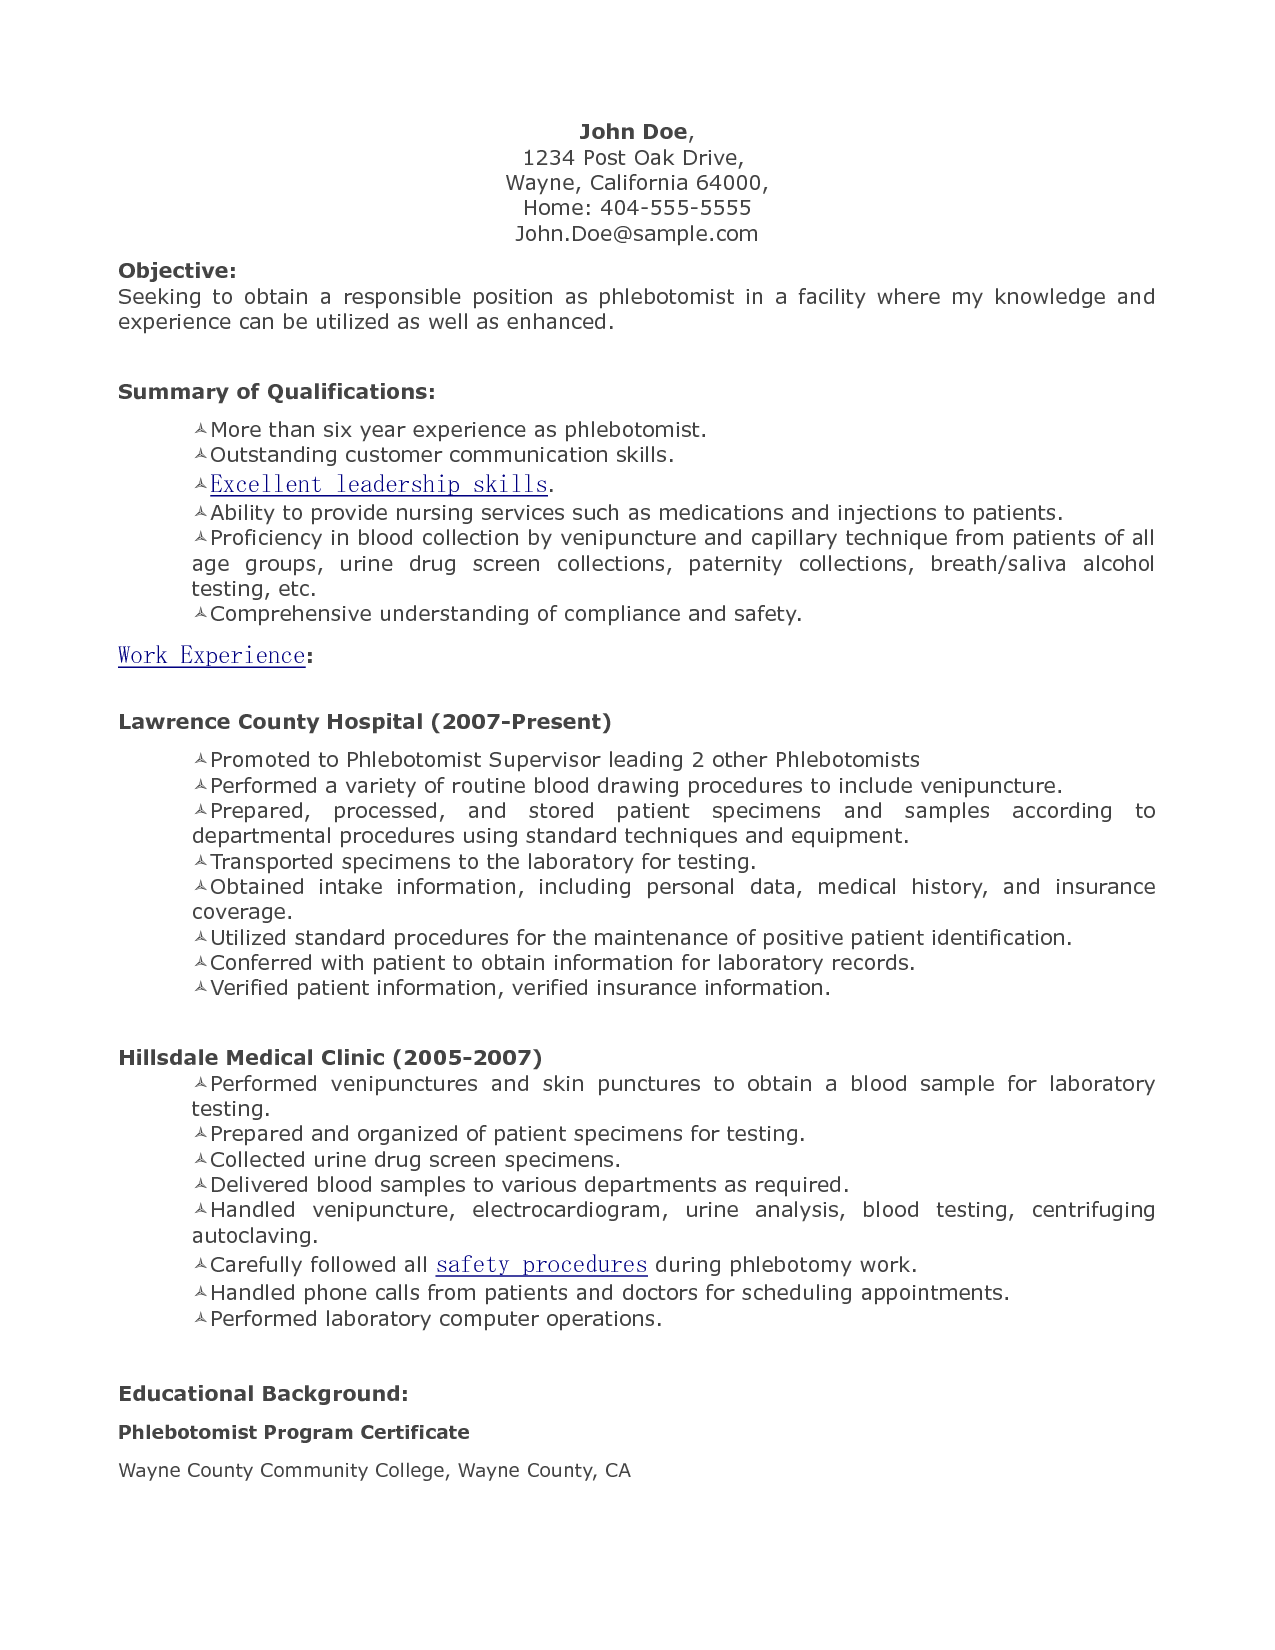 Sample Phlebotomy Resume Classy Resume Objectives For A Phlebotomist  Sample Phlebotomist Resume .